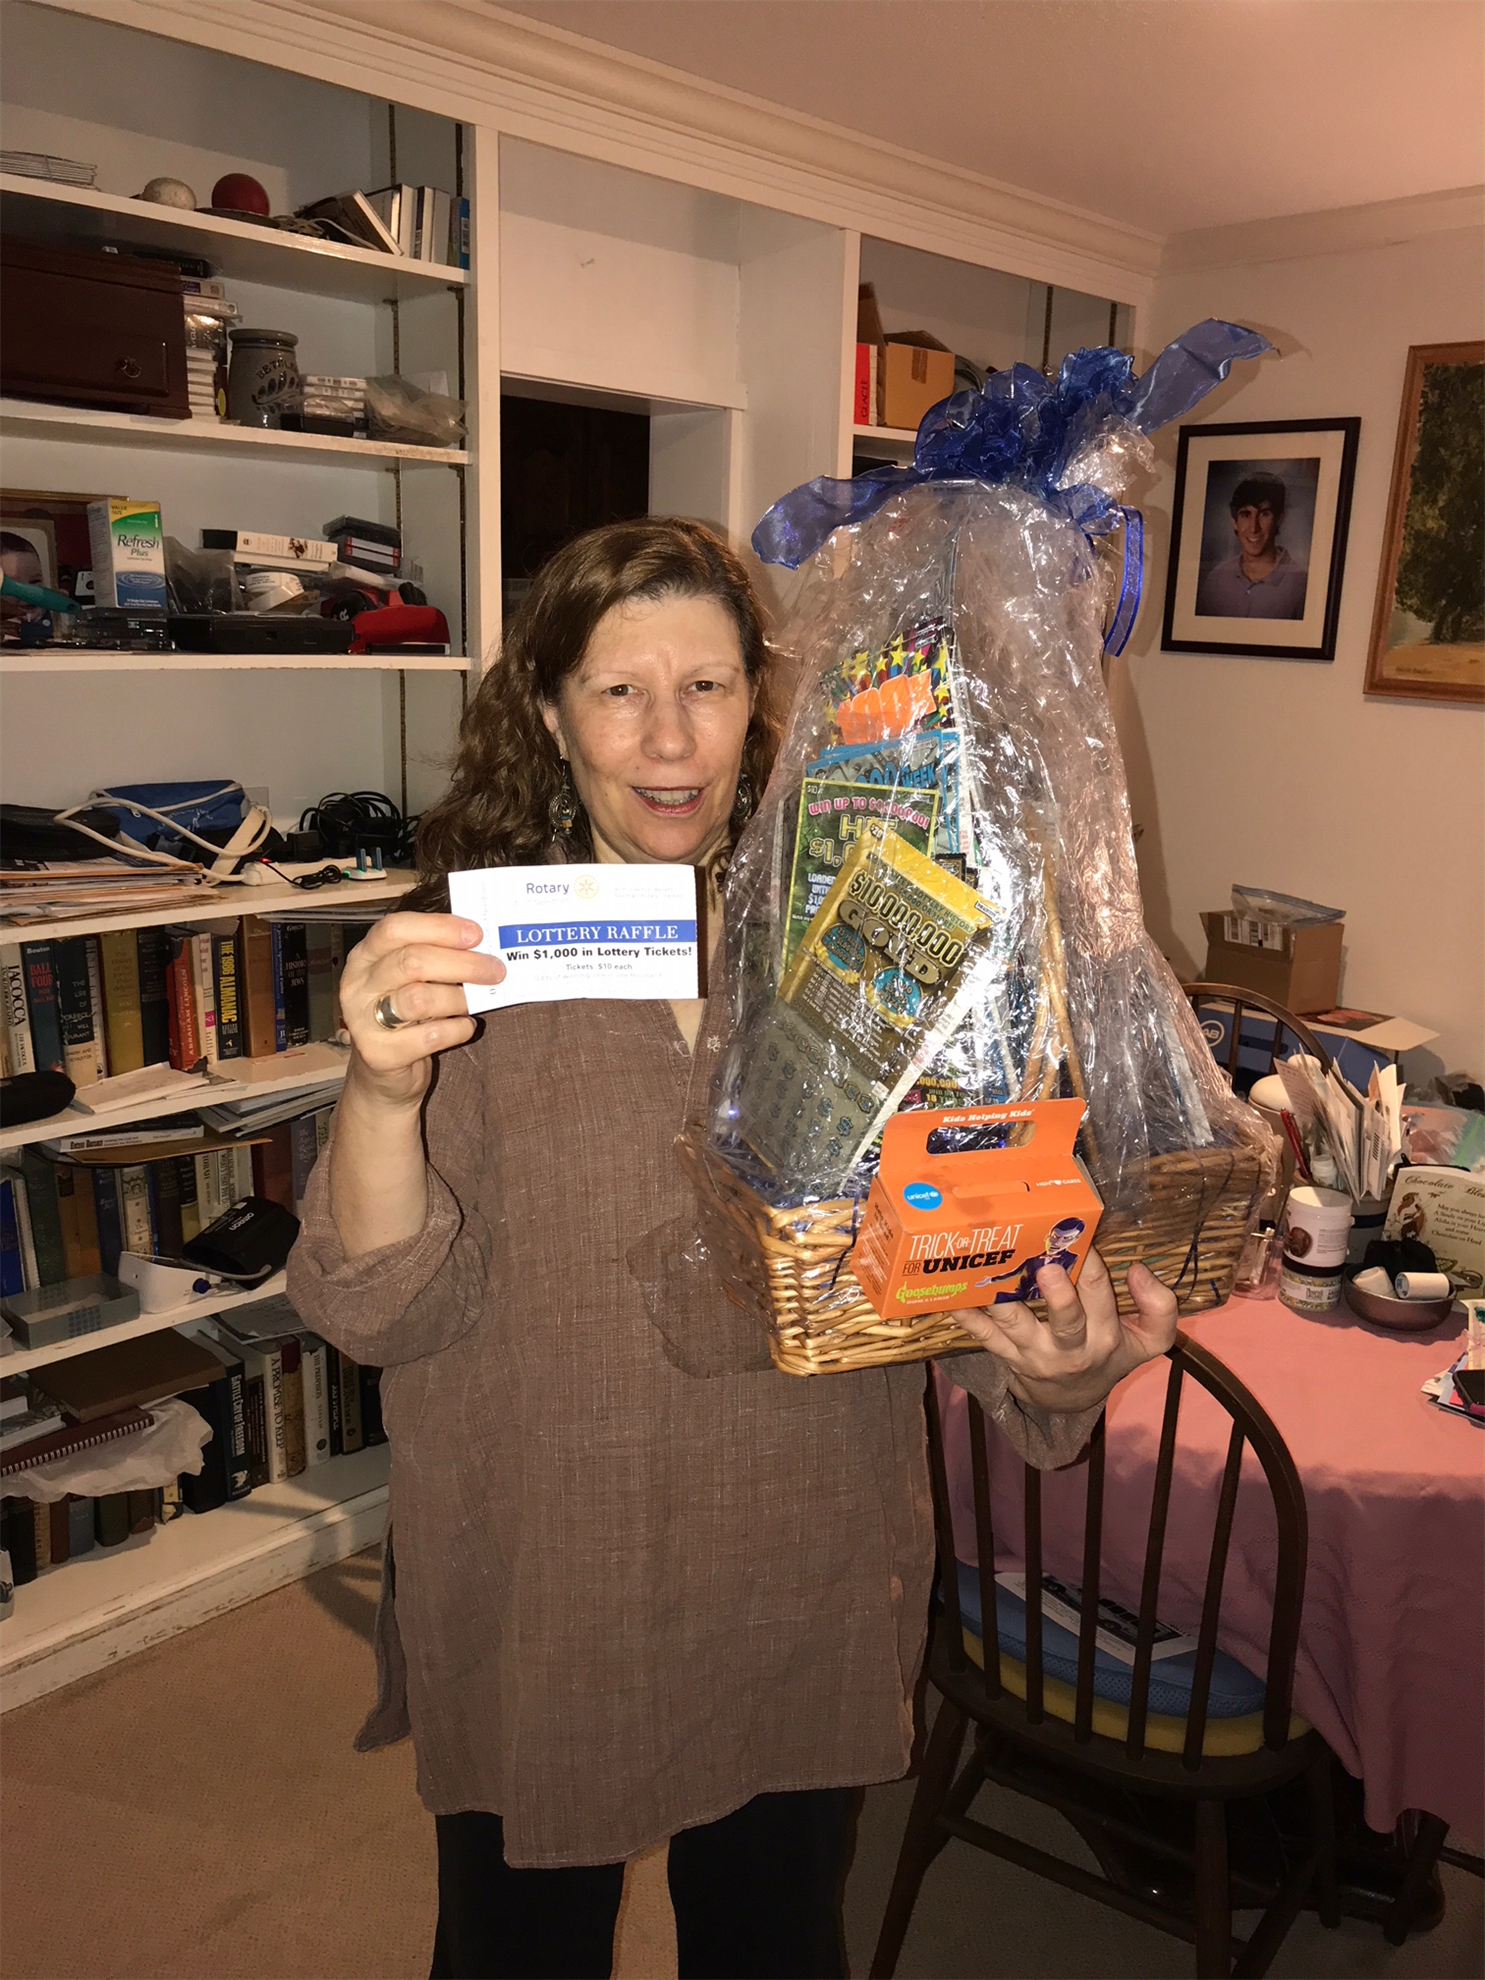 Stories rotary club of needham she bought her ticket from us at roche brothers and says she is going to spend what winnings she gets to help a brother in law purchase a prosthetic leg dailygadgetfo Images